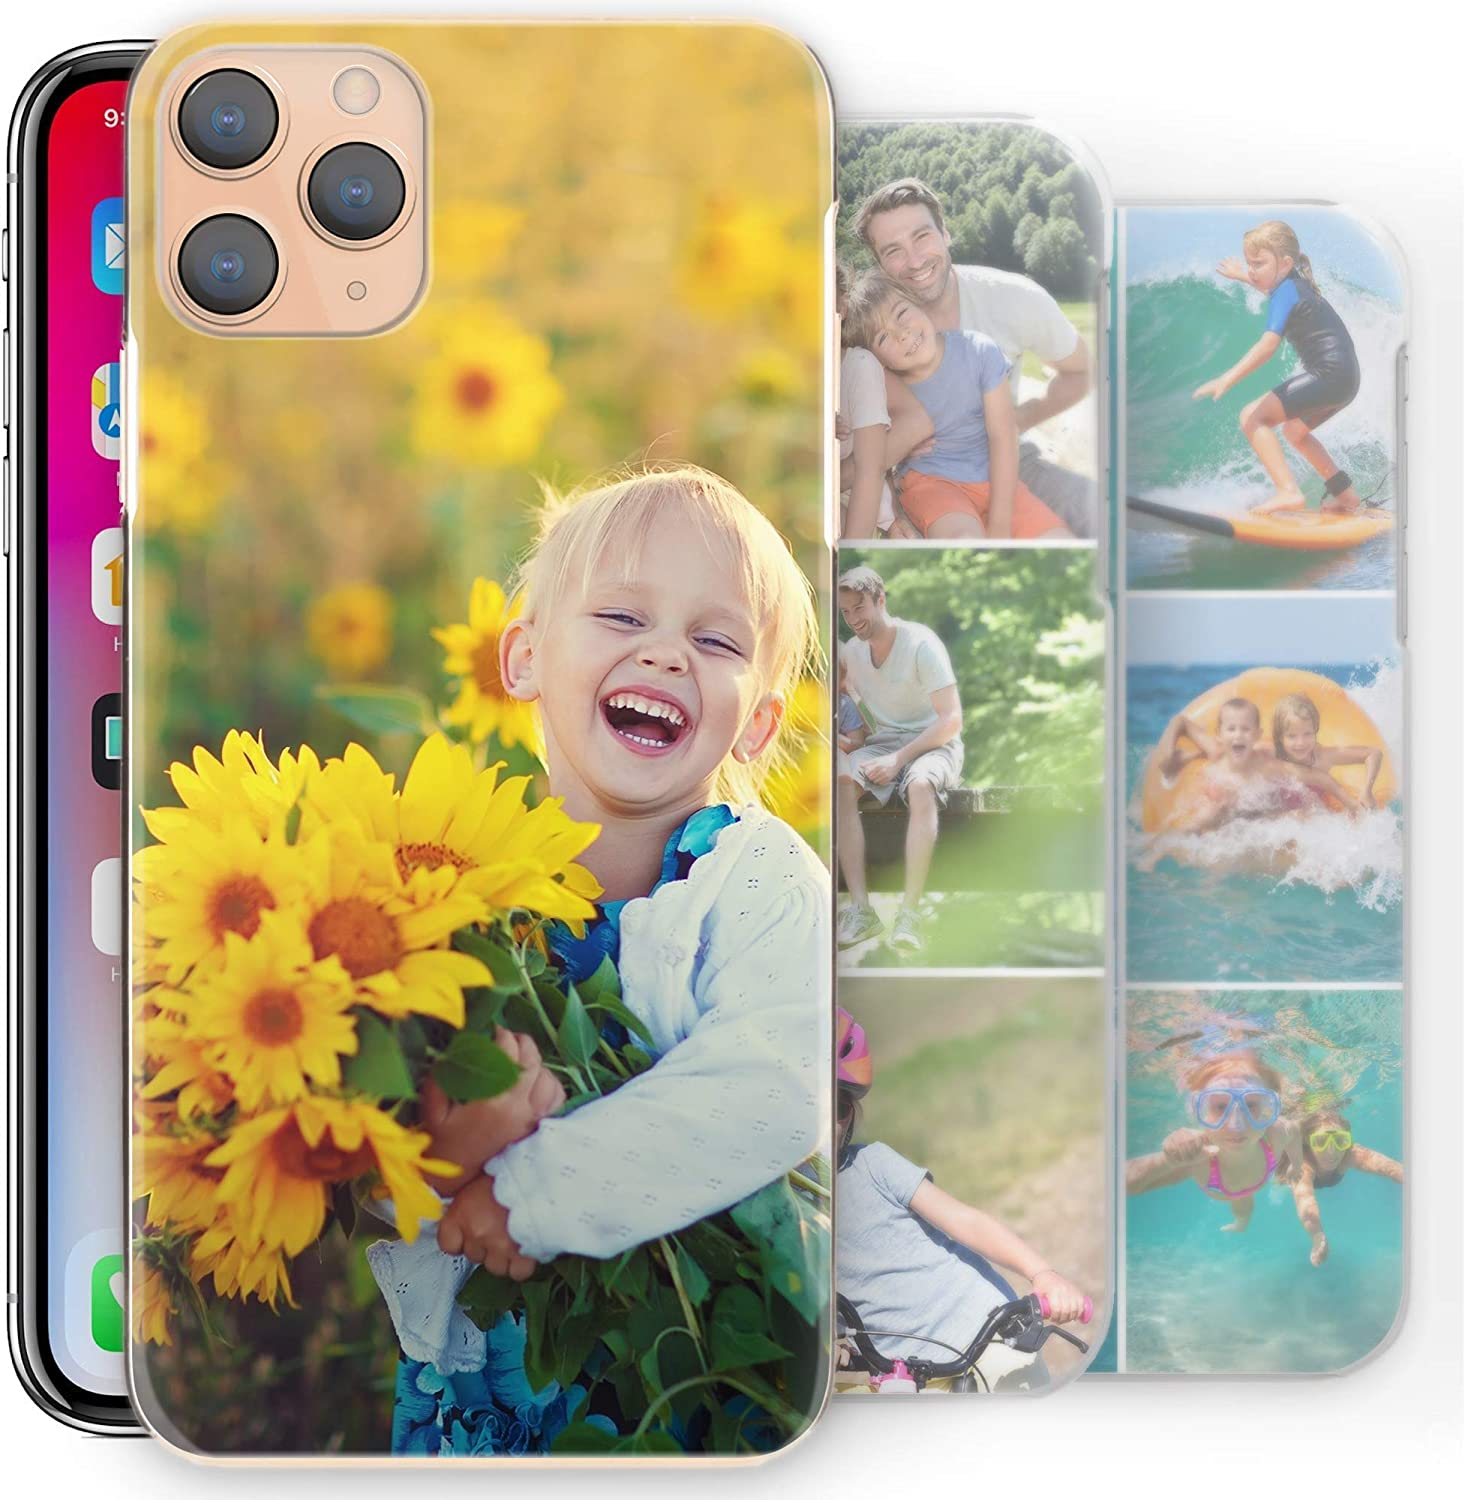 Personalized Phone Case for Samsung Galaxy J3 (2017), Custom Photo Hard Cover, Personalize with Image - Customize Now